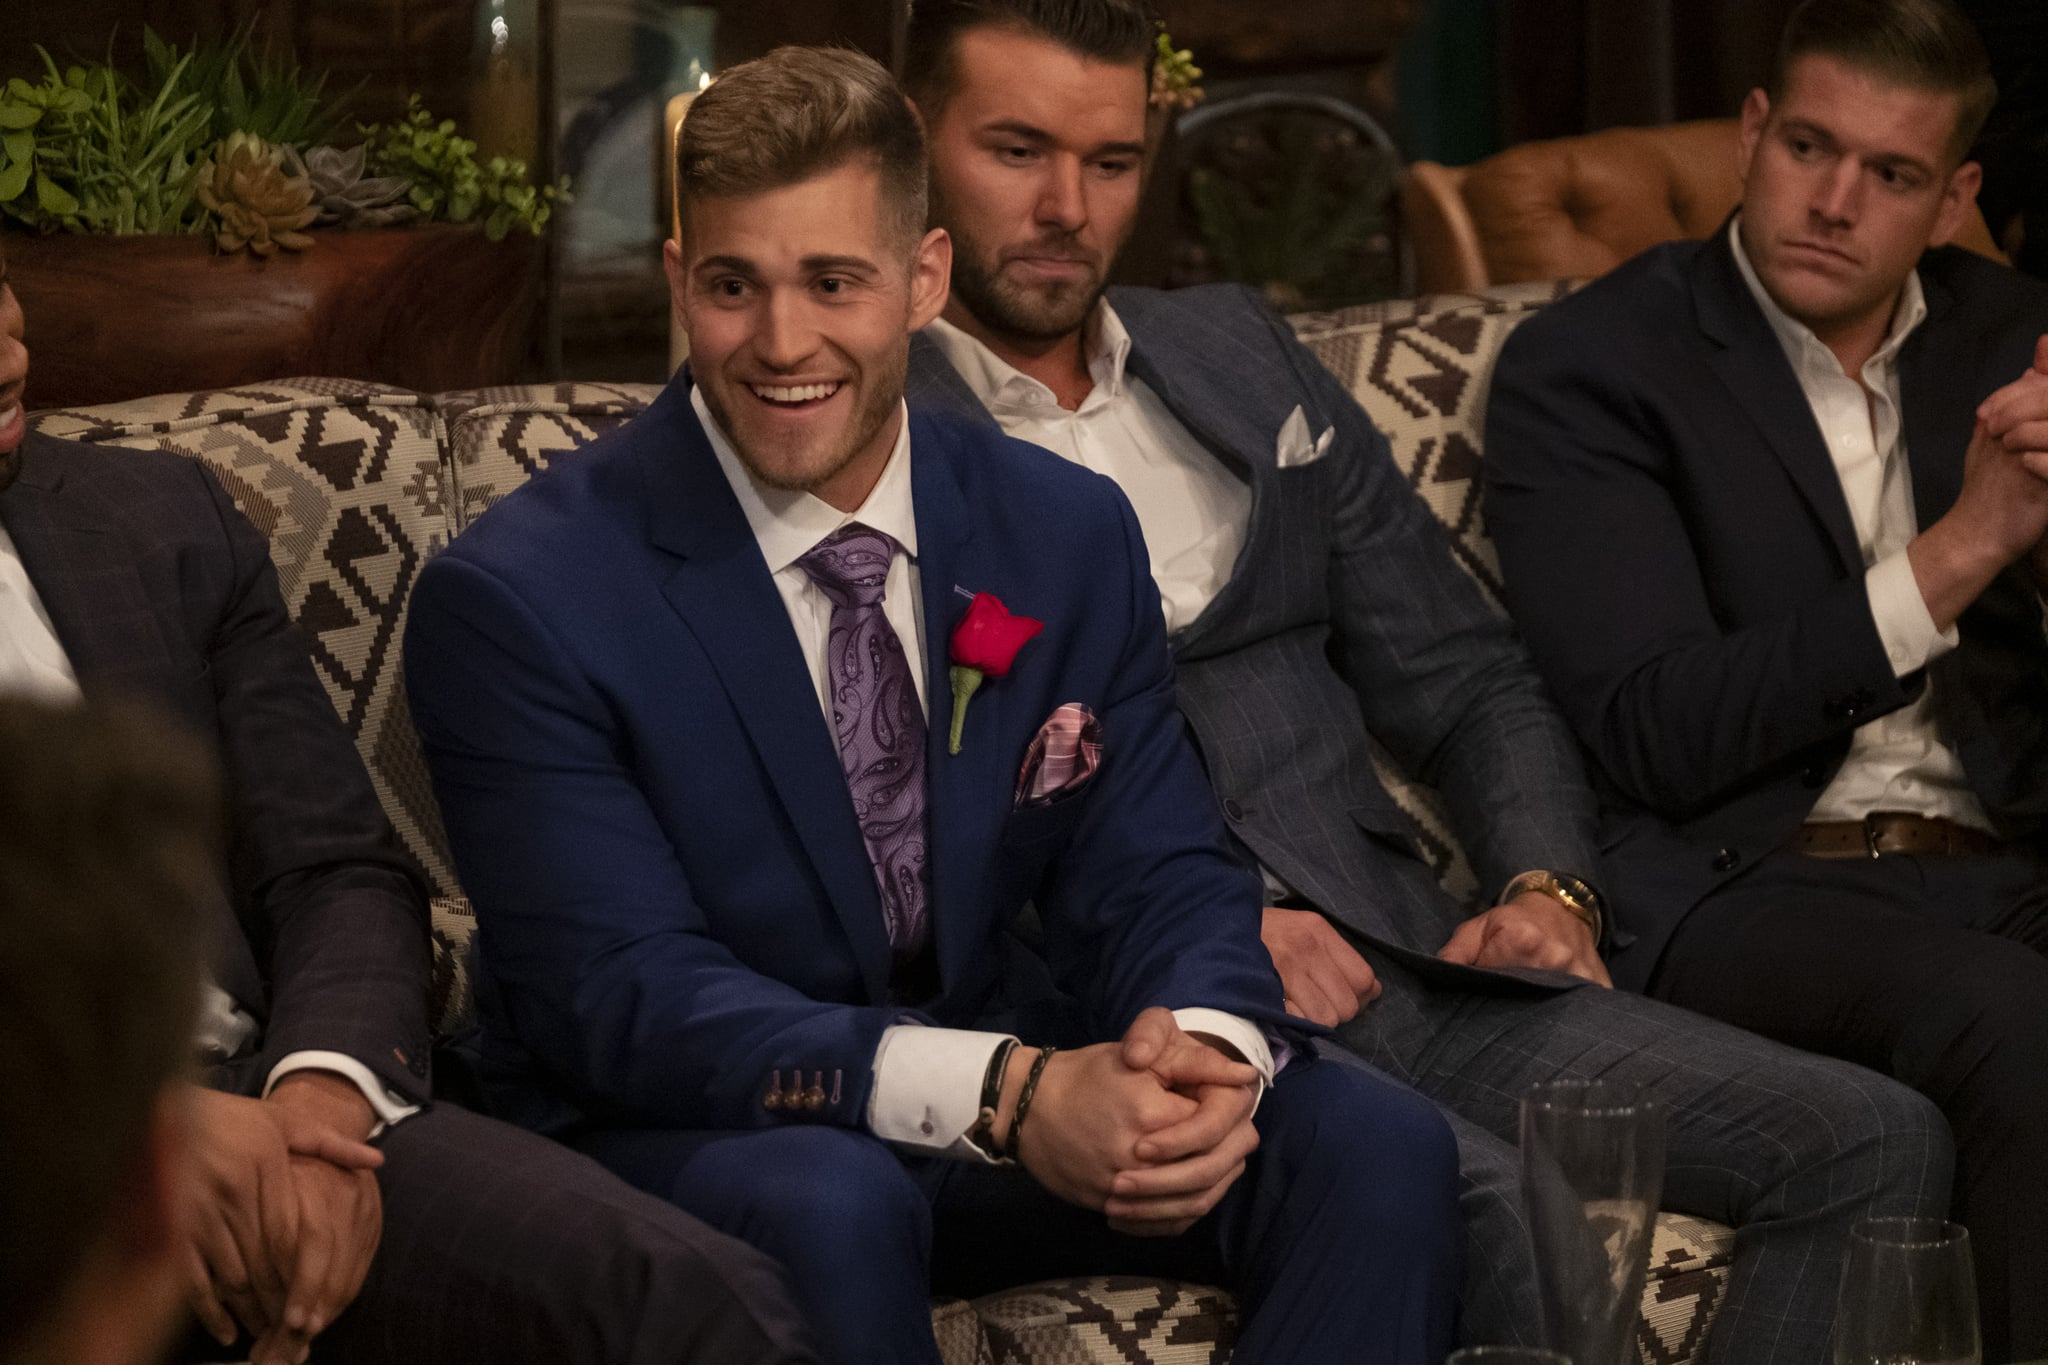 The Bachelorette: Luke's Storyline Keeps the Drama Going, but His Behavior Is Extremely Toxic